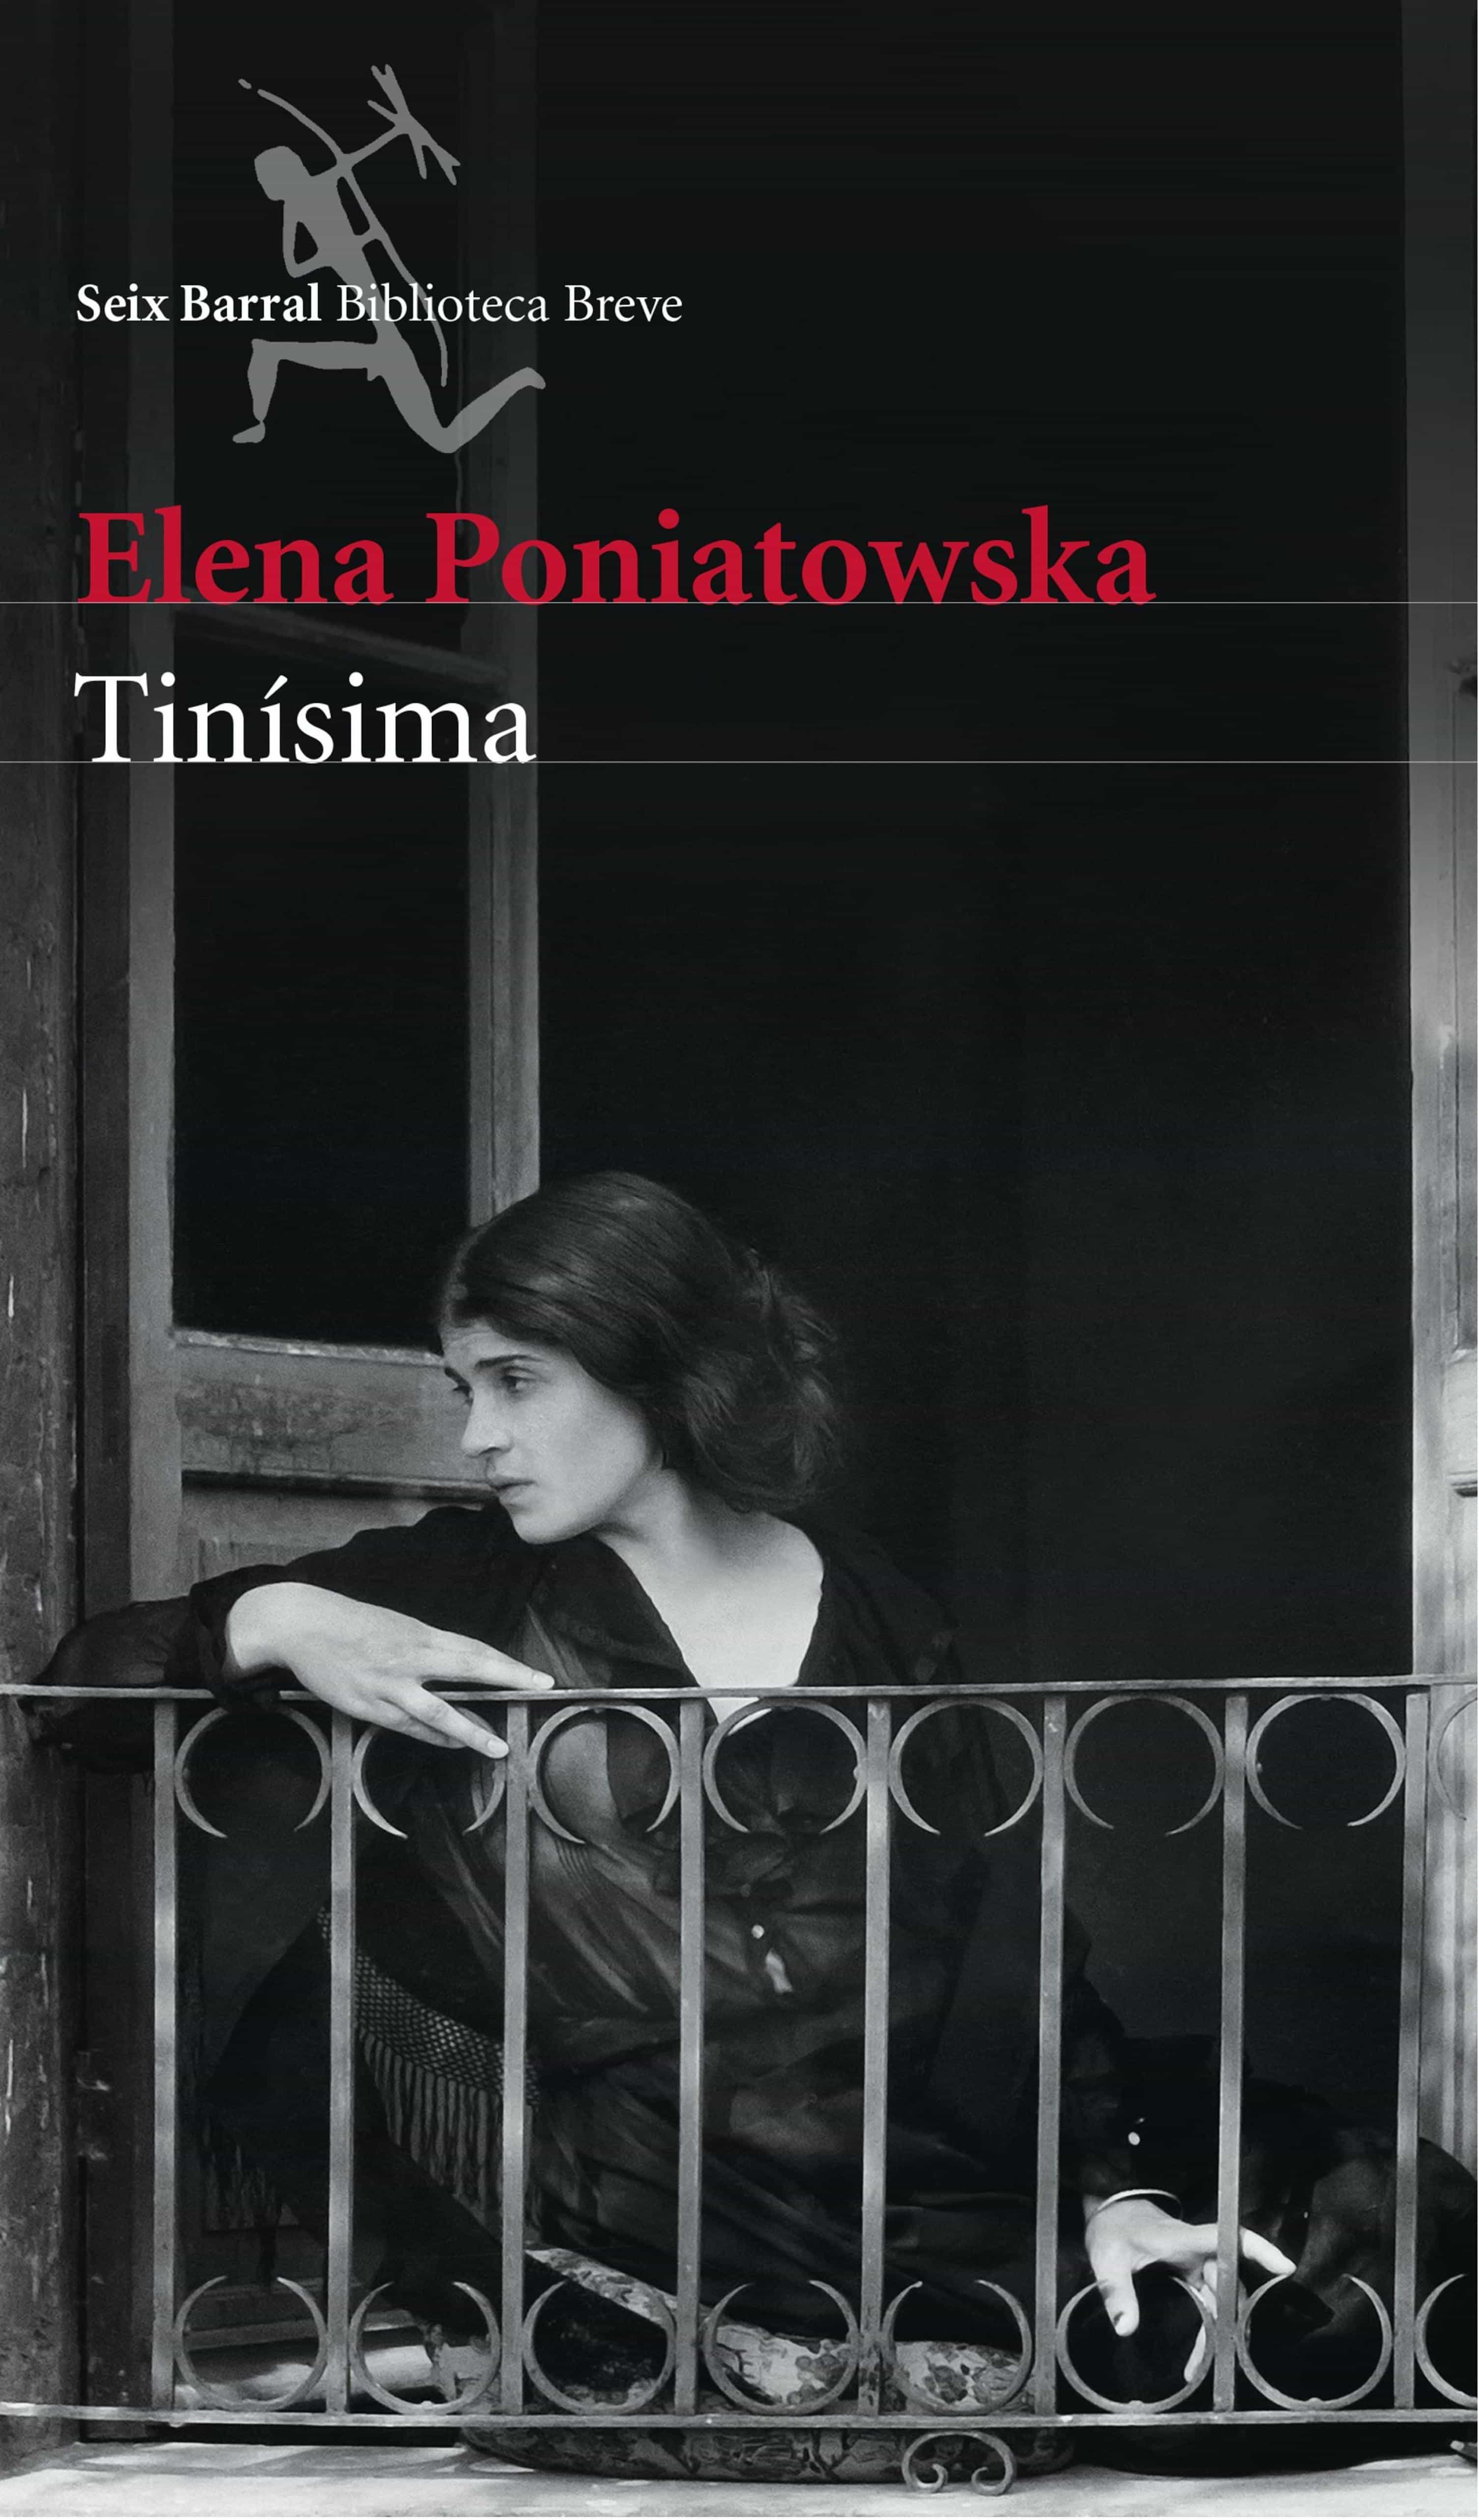 Elena poniatowska tinisima ebook download author fandeluxe Image collections